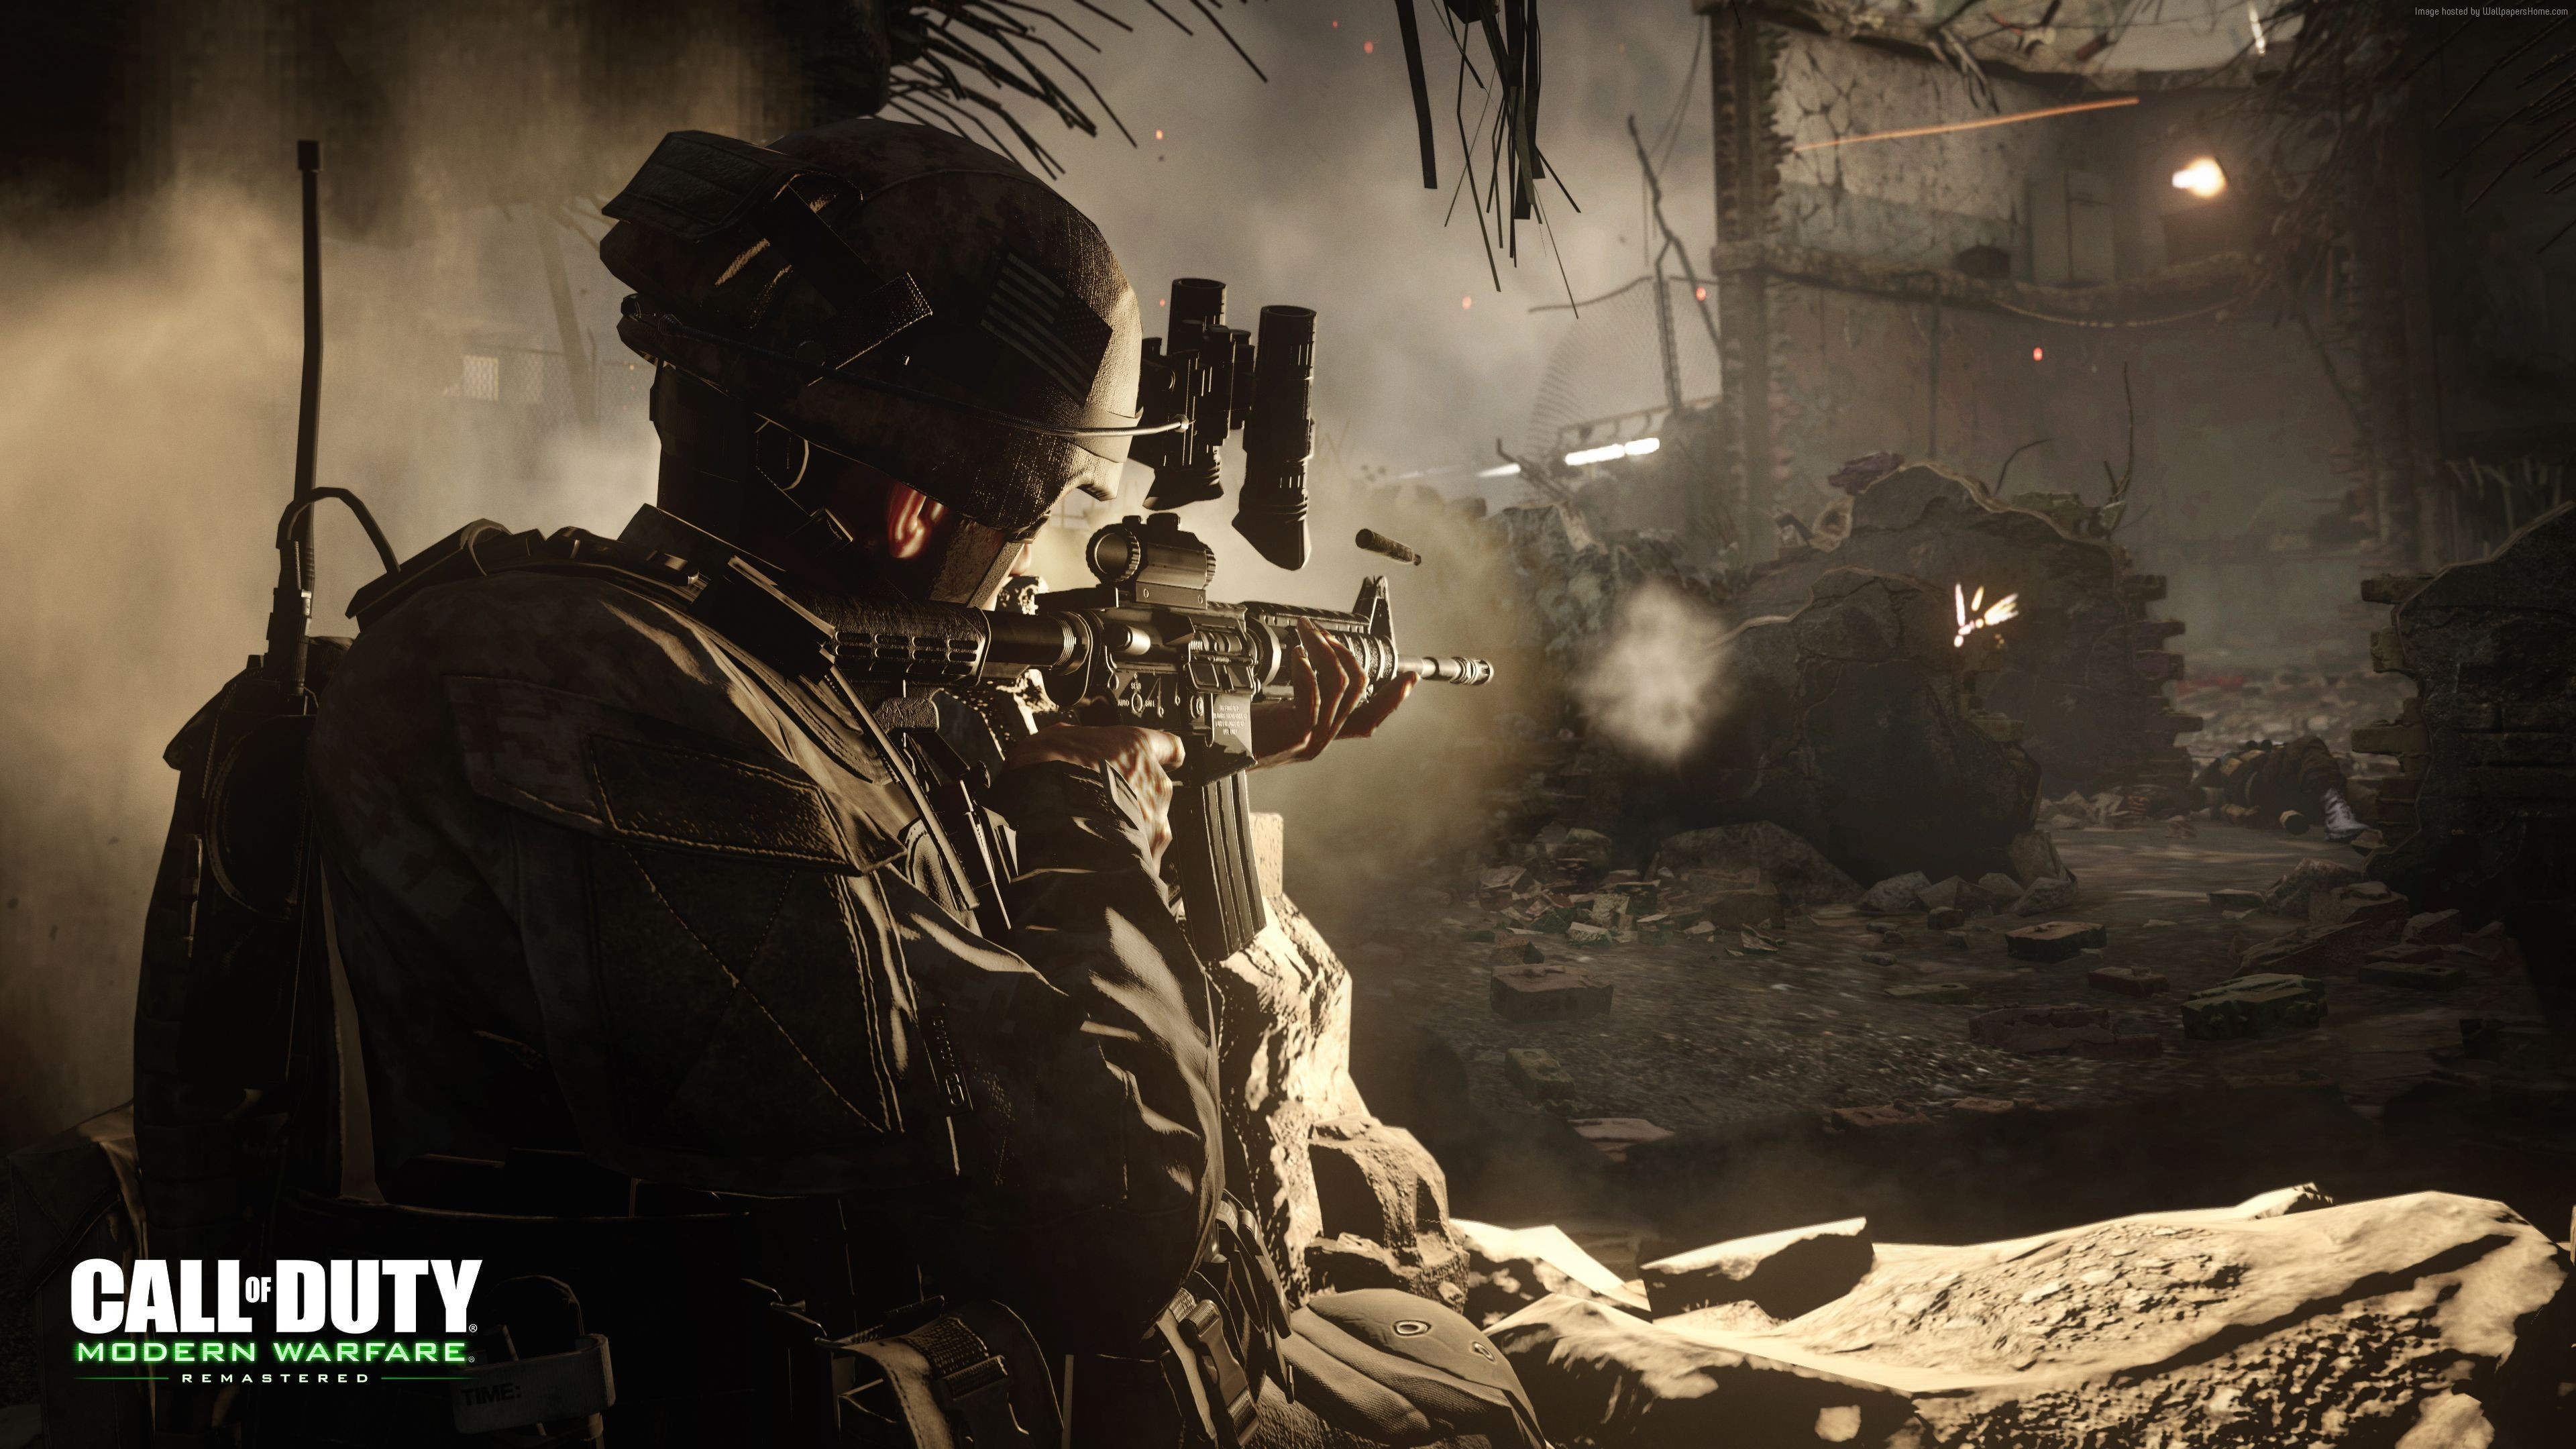 Call of Duty Modern Warfare 2 Remastered campaign confirmed